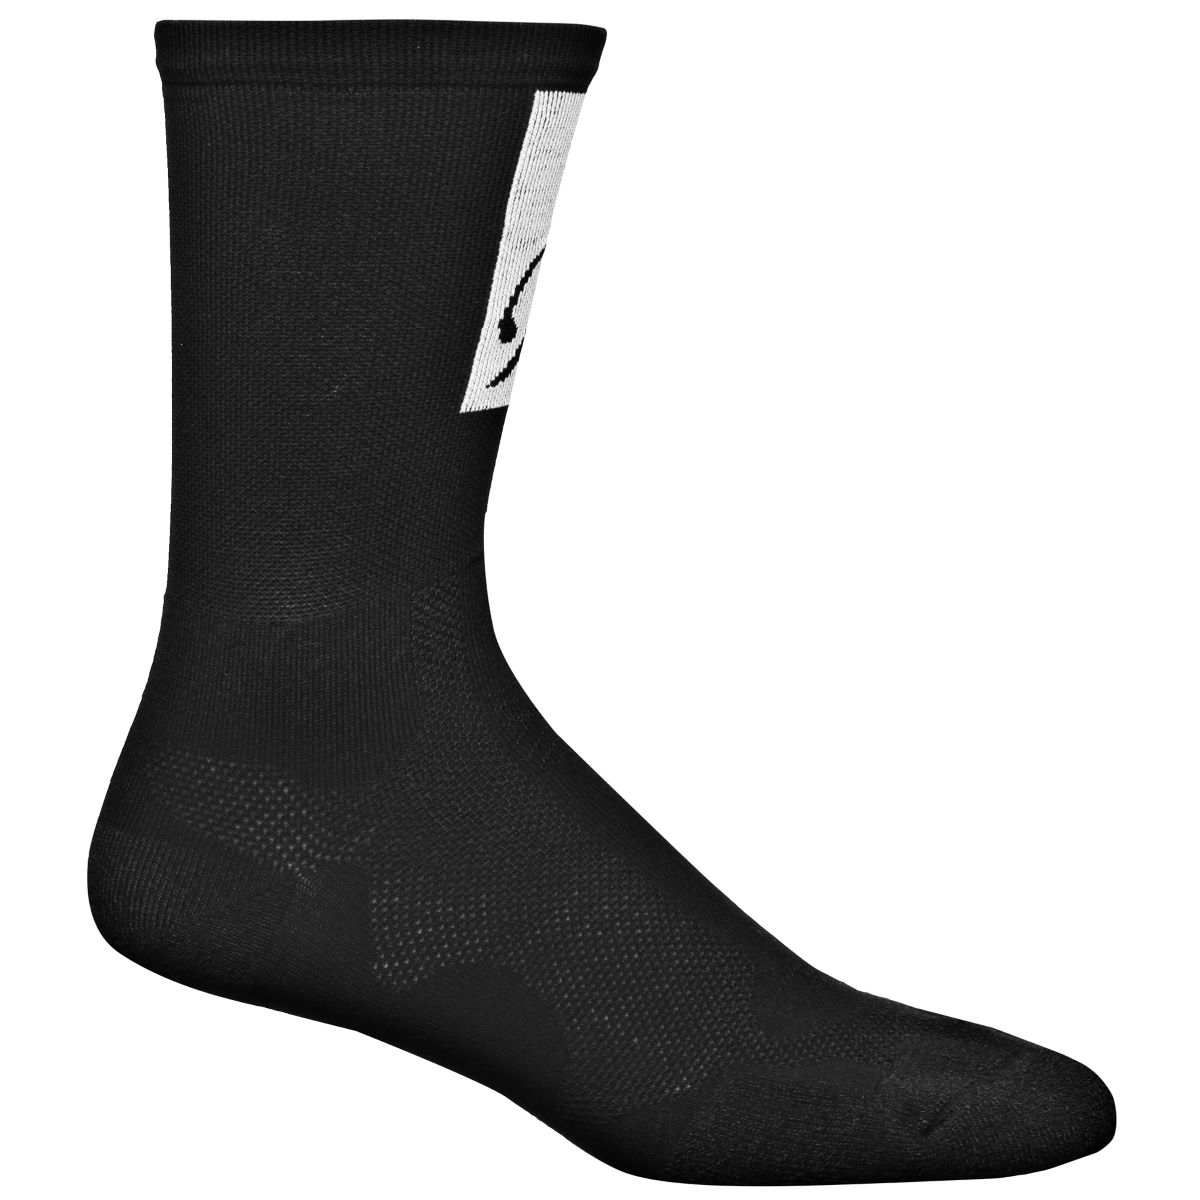 Image of Chaussettes Isadore Hi-Top - Extra Large Noir | Chaussettes